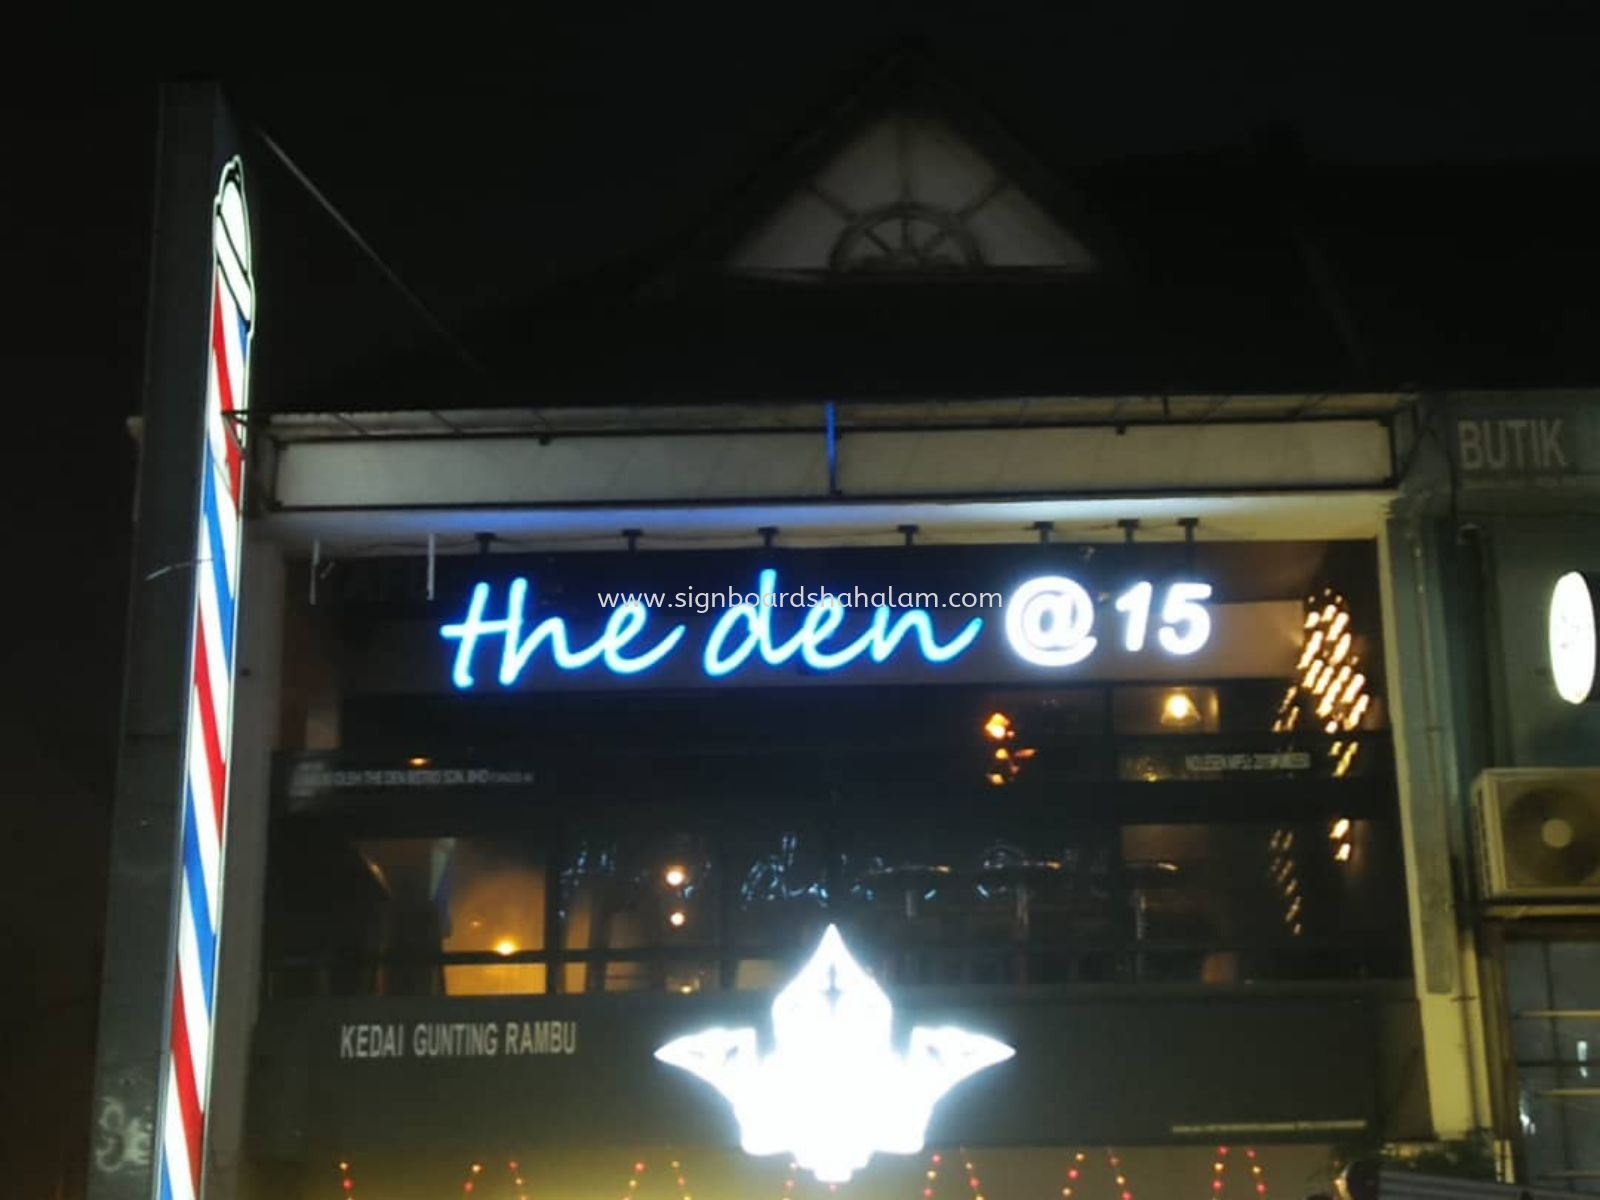 The Den cafe, Ss15 3D Led Box Up Signage